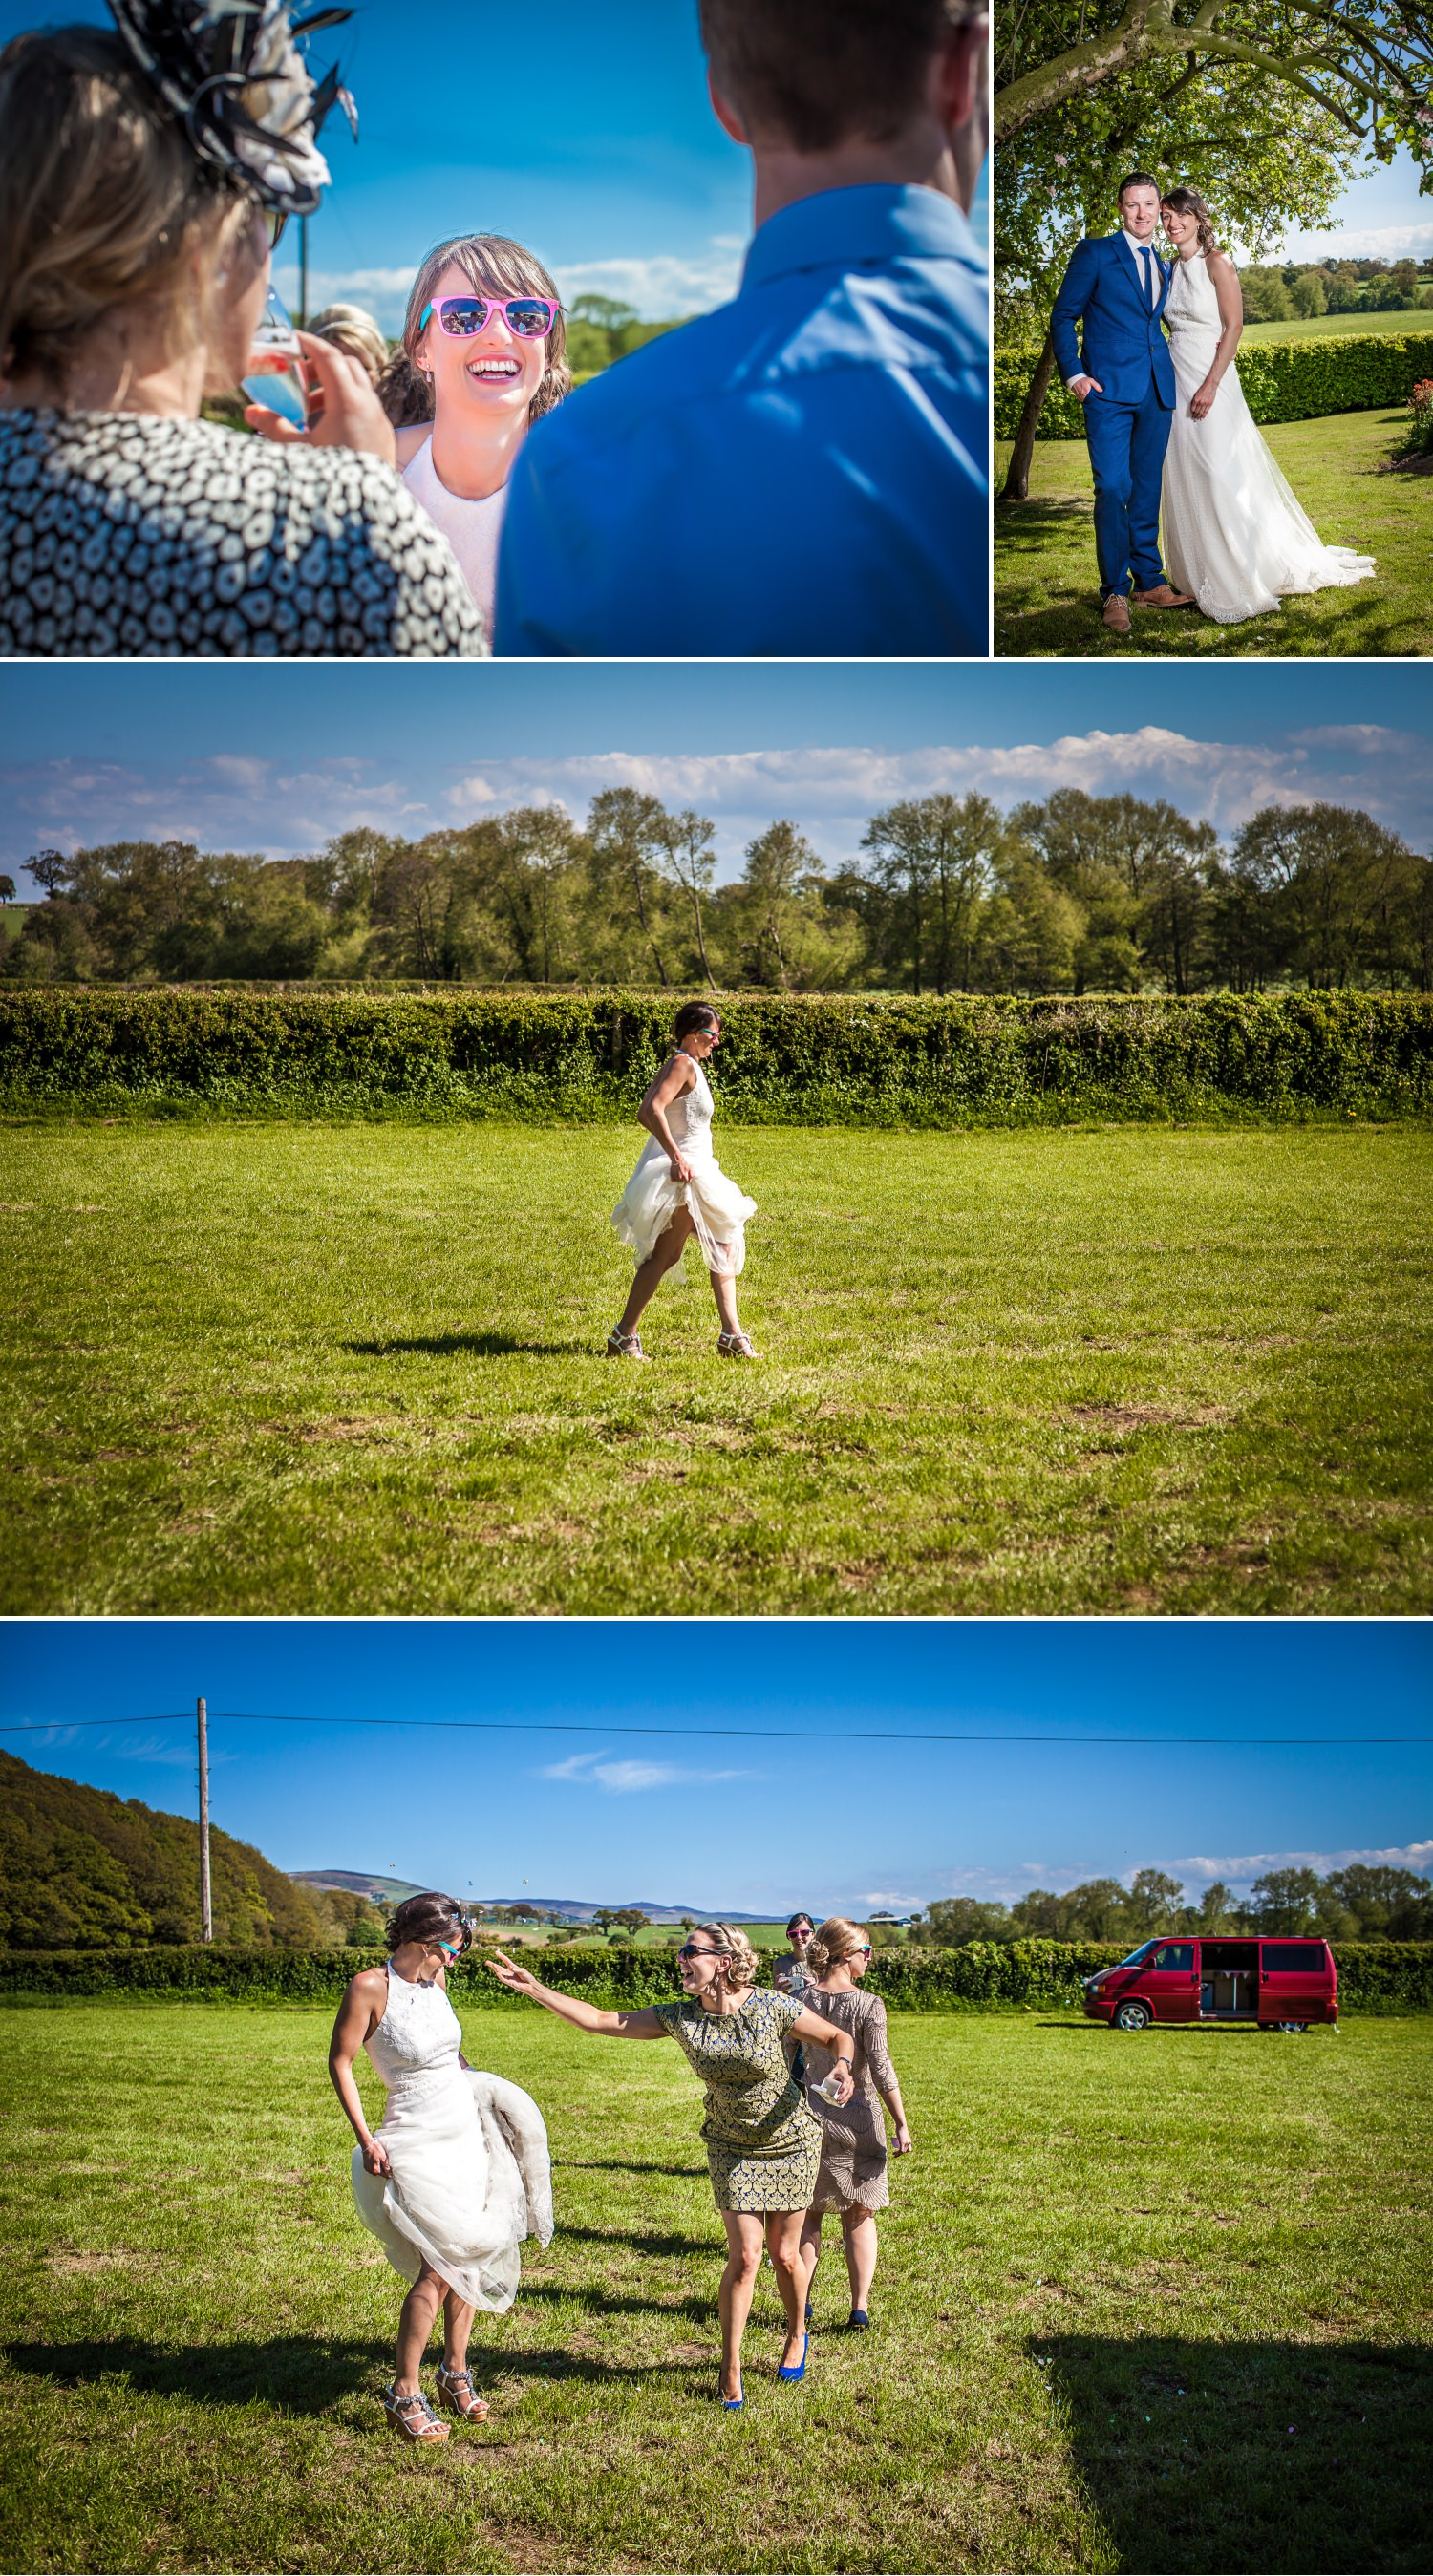 wedding photography of bride and groom north wales